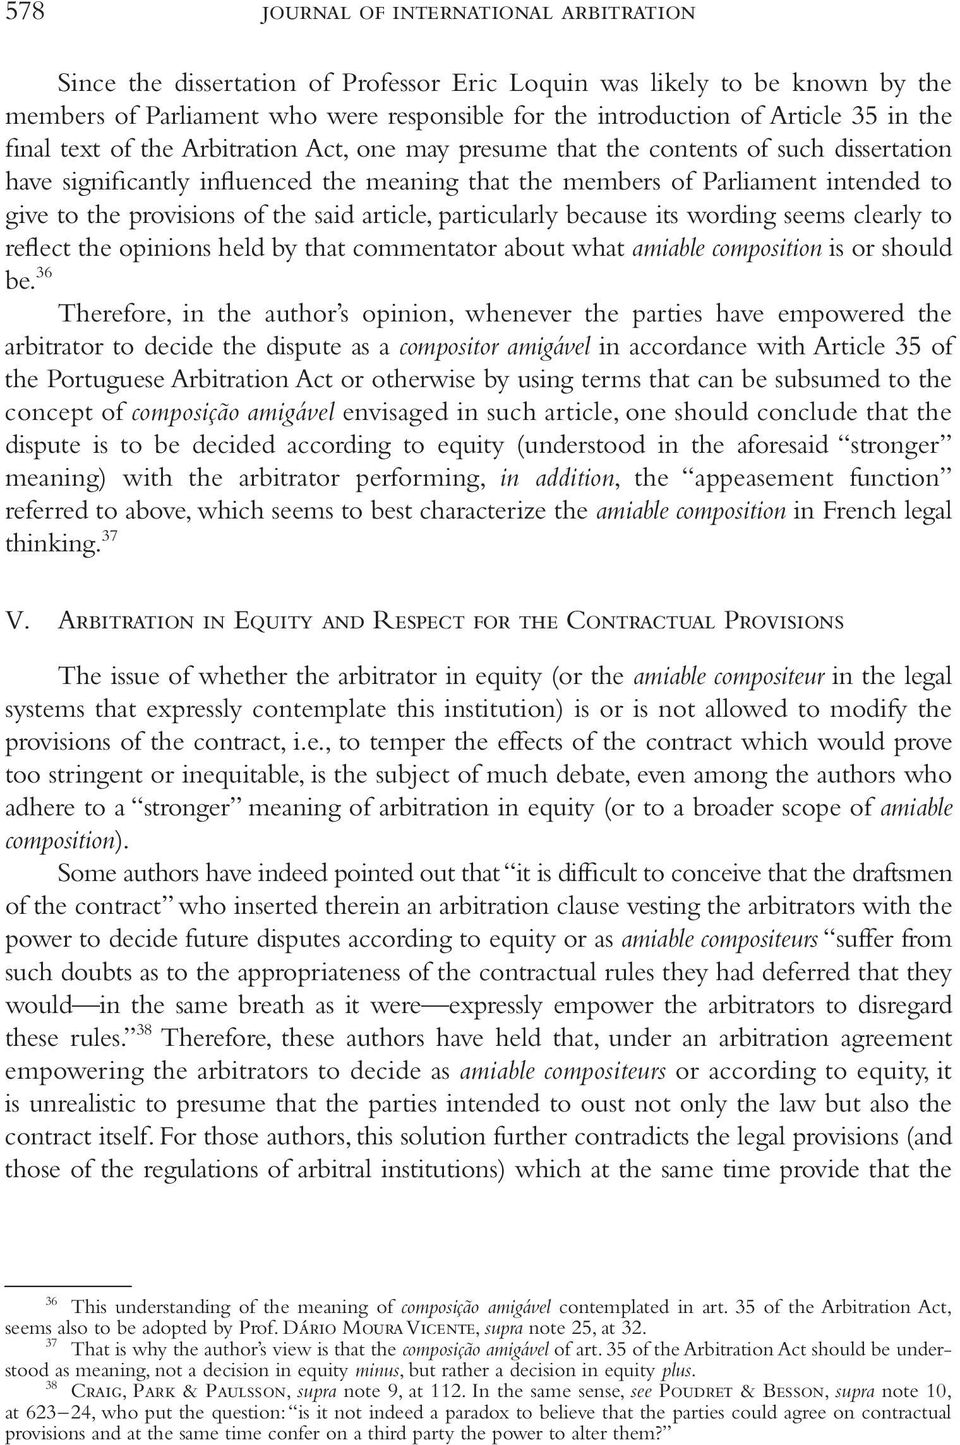 provisions of the said article, particularly because its wording seems clearly to reflect the opinions held by that commentator about what amiable composition is or should be.